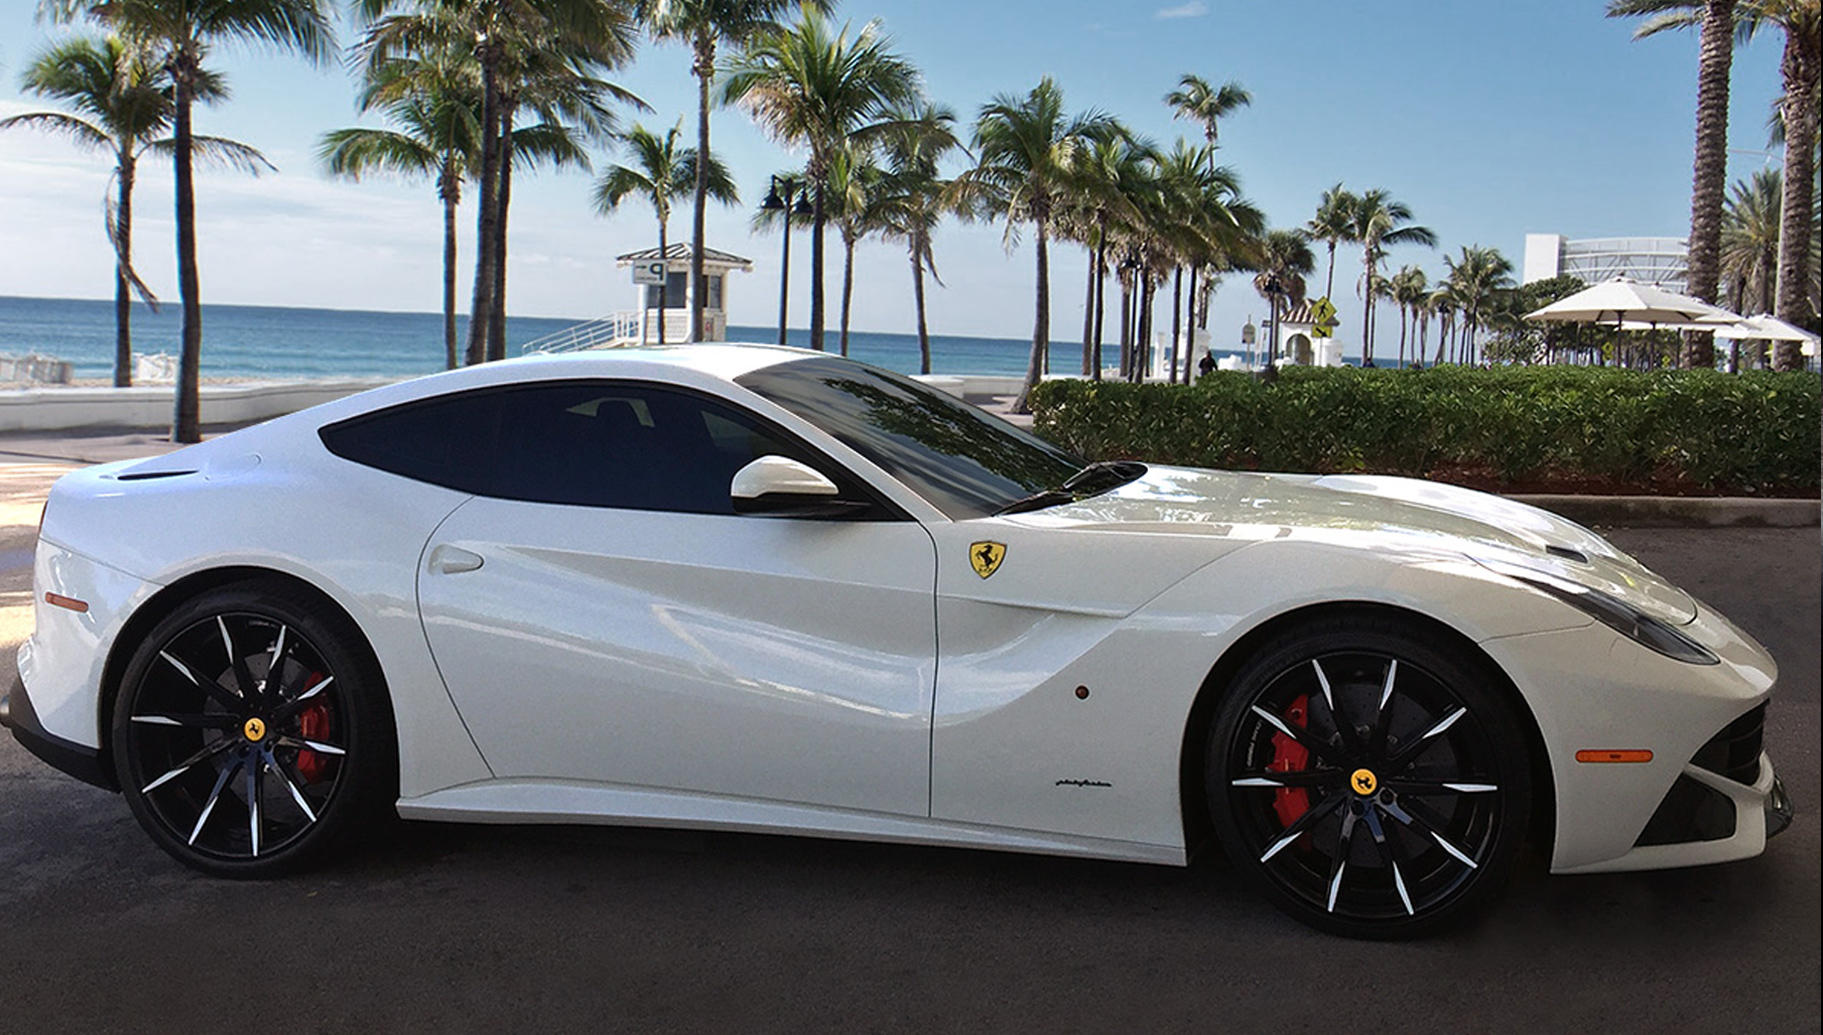 Custom LZ-101 on the Ferrari F12.